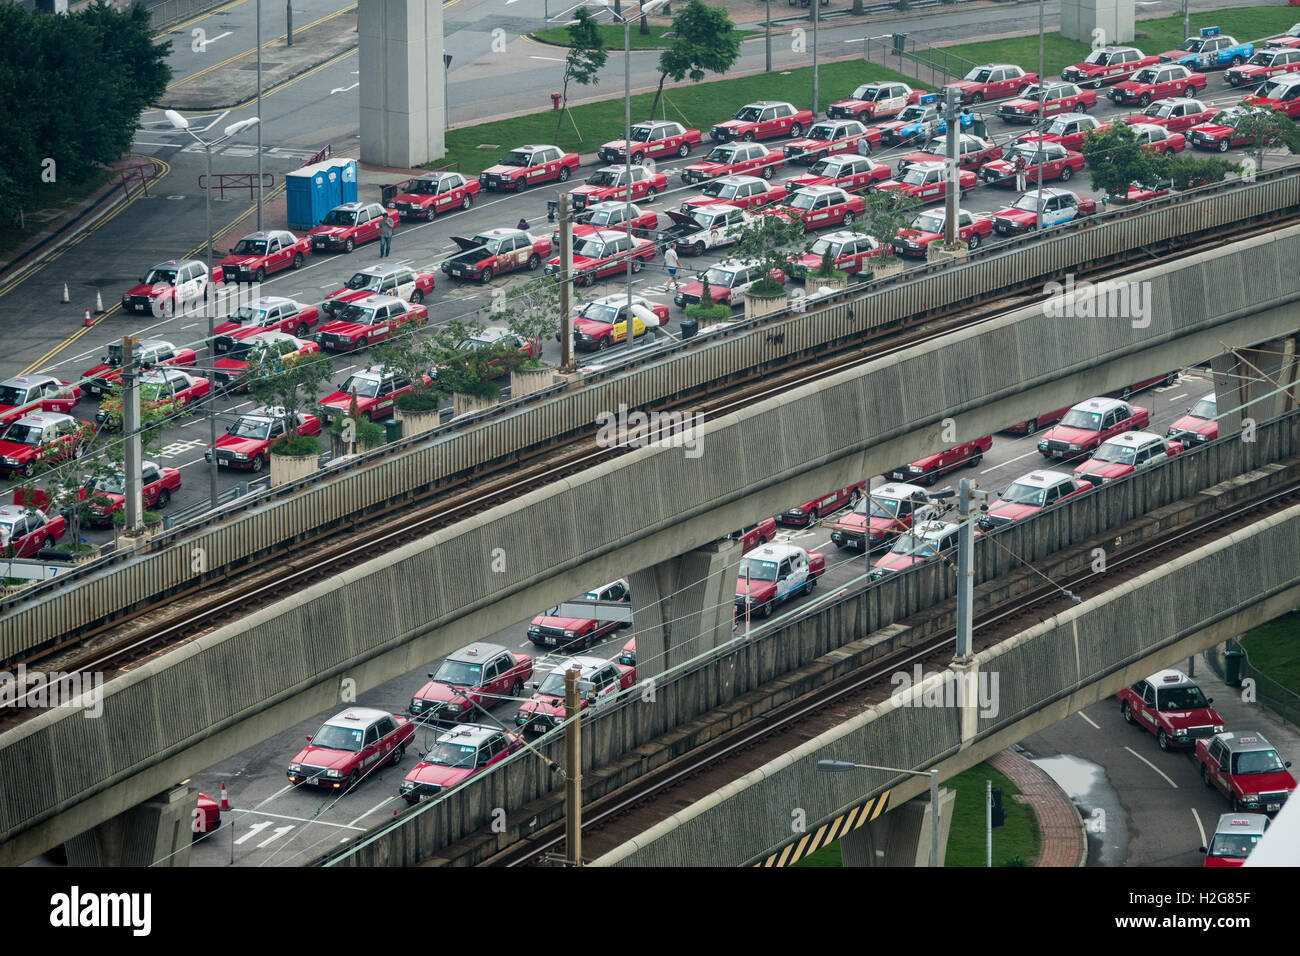 taxis wait to enter the arrivals stand at Hong Kong International Airport - Stock Image